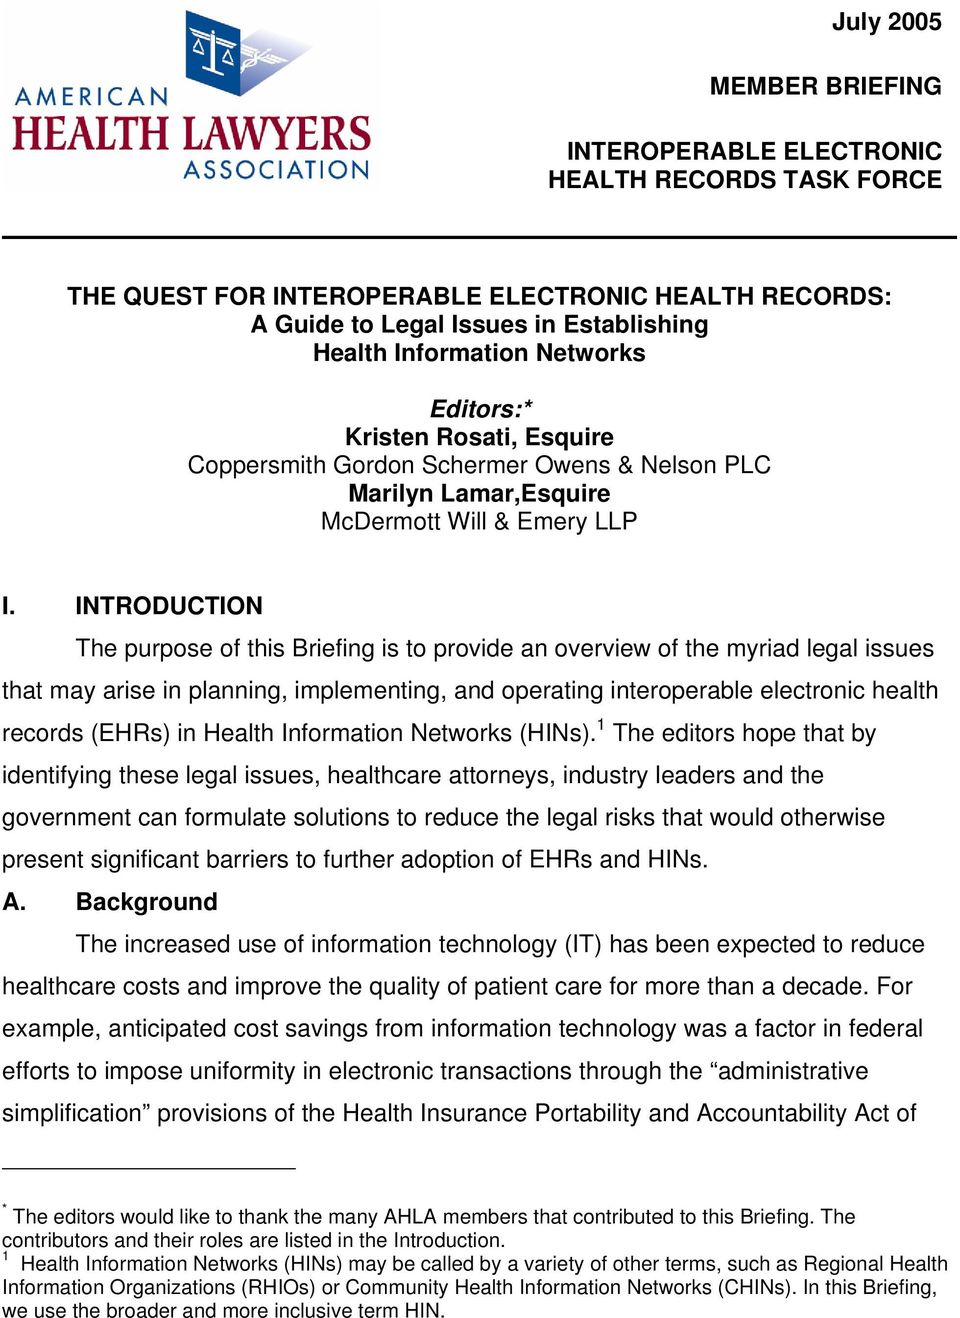 INTRODUCTION The purpose of this Briefing is to provide an overview of the myriad legal issues that may arise in planning, implementing, and operating interoperable electronic health records (EHRs)